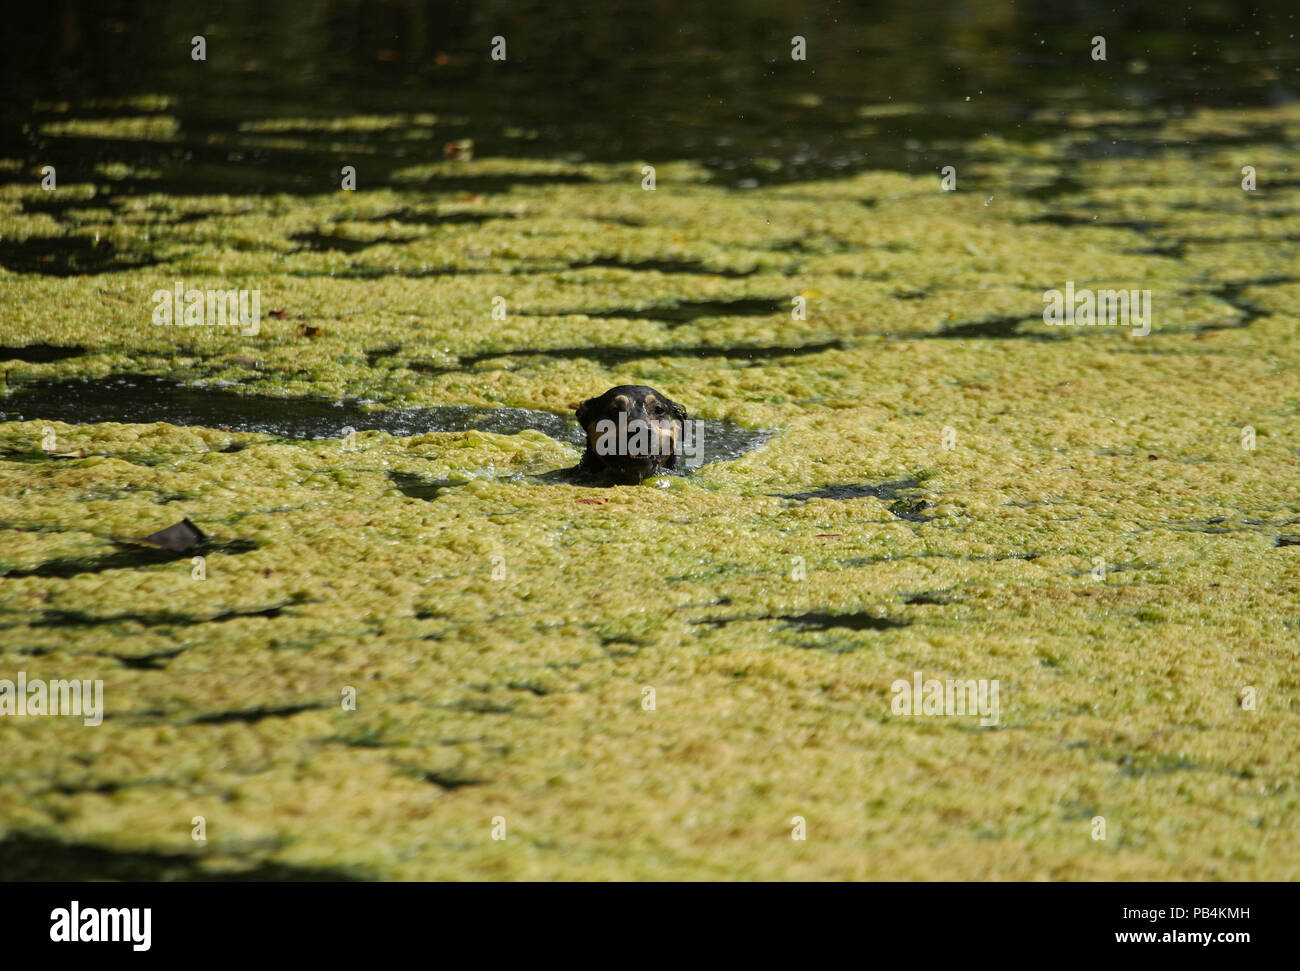 Skollie, a seven-year-old Staffy Cross Labrador, swims in a pond on Hampstead Heath, London. - Stock Image